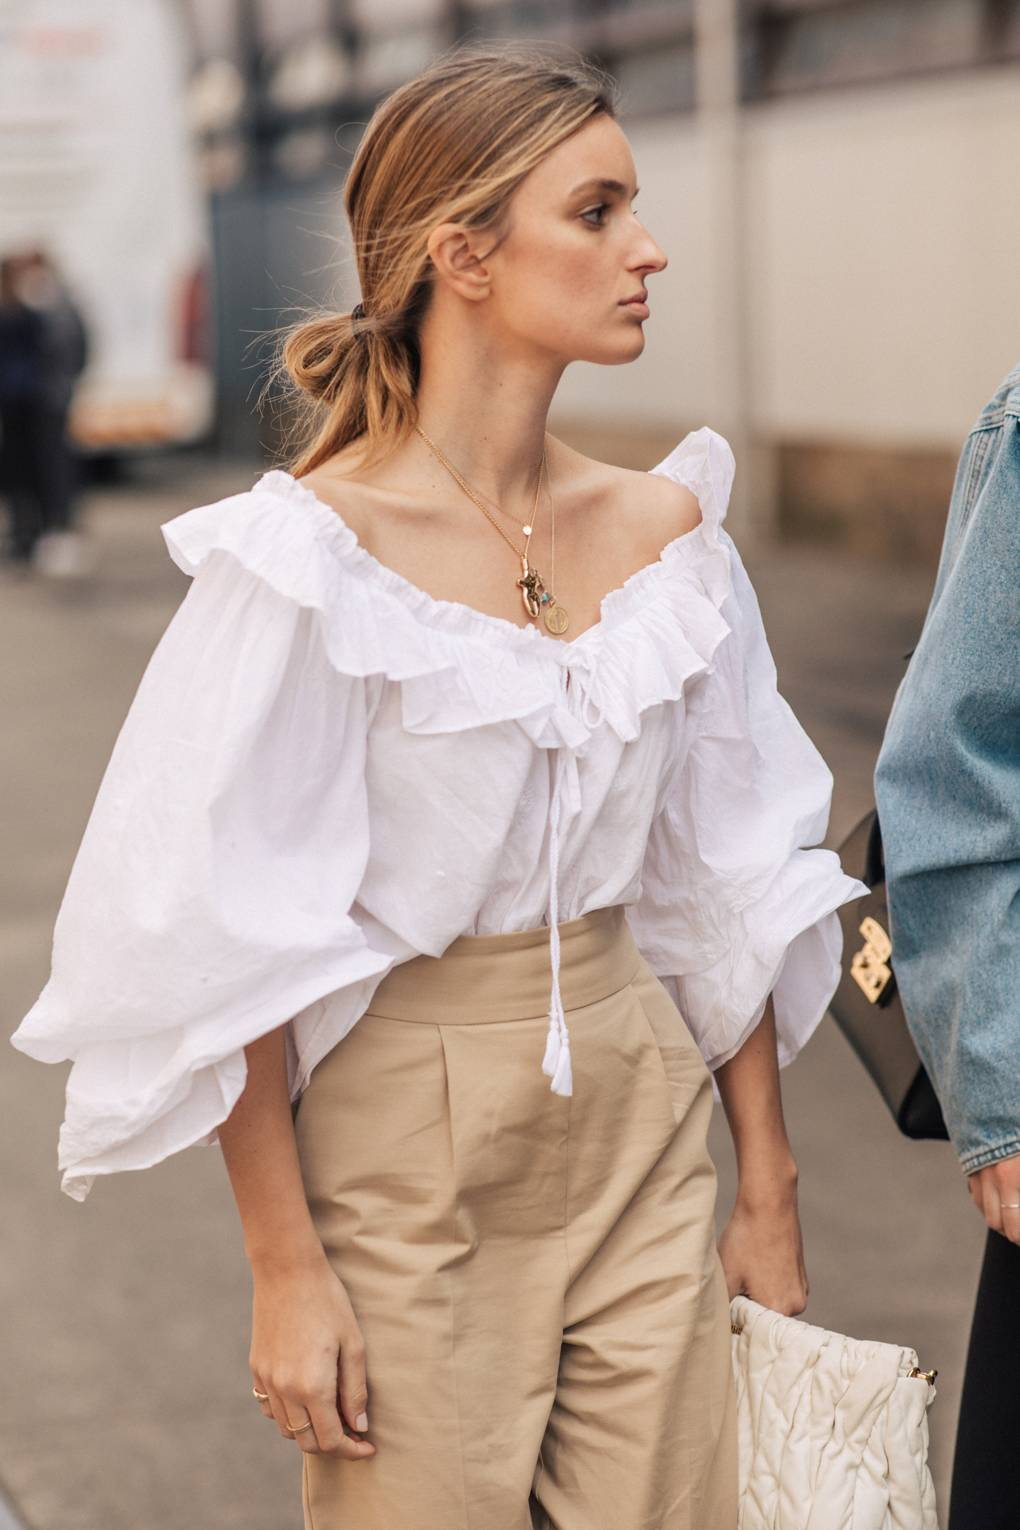 6 Ways To Wear A White Blouse This Summer!